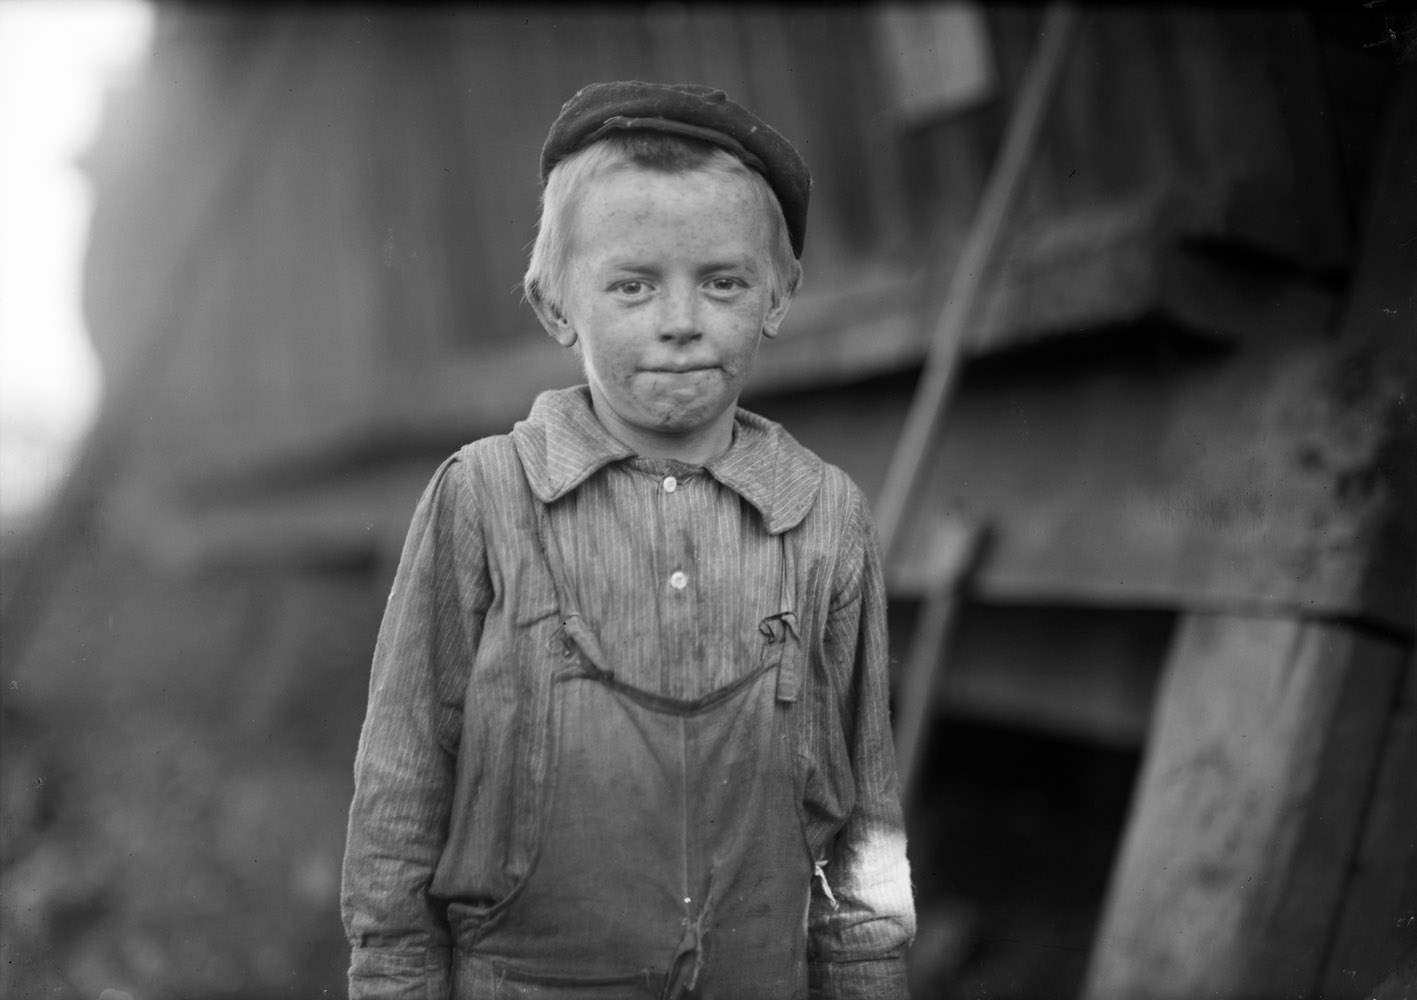 "Lonnie Cole, doffer at cotton mill, 11 years old, Birmingham, Alabama, 1910.  OUR BABY DOFFER  they called him. Has been doffing for some months. When asked his age, he hesitated, then said,  I'm Twelve.  Another young boy said  He can't work unless he's twelve.  Child Labor regulations were conspicuously posted in the mill. —Hine's original caption ""He was just a very easygoing person. When he was around, all of the kids loved to be with him, because he would play with them and joke with them. My Uncle Lon was not a man who made a great impact. He was just an ordinary man. I find it really exciting that, in a way, because of your story about him, he has made an impact.  —Niece of Lonnie Cole"